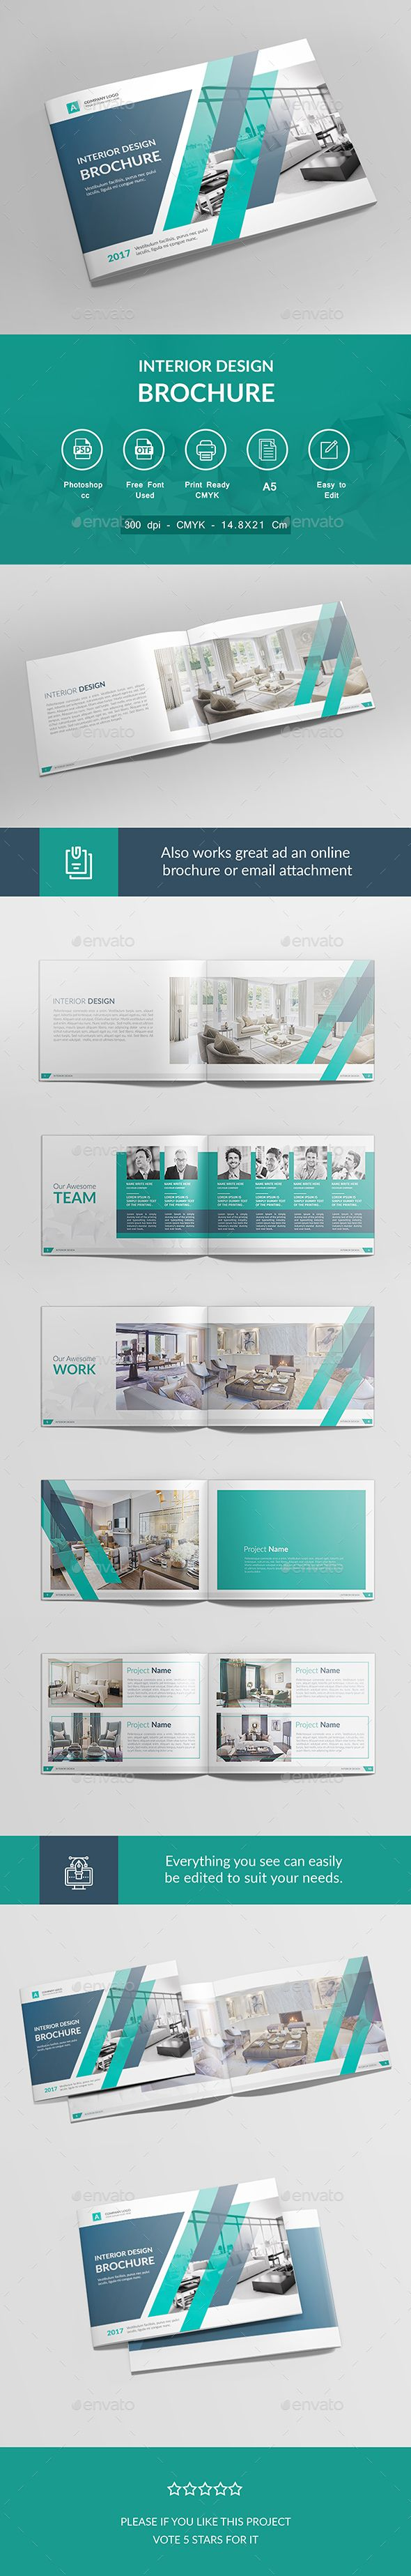 Interior Design Brochure Template PSD